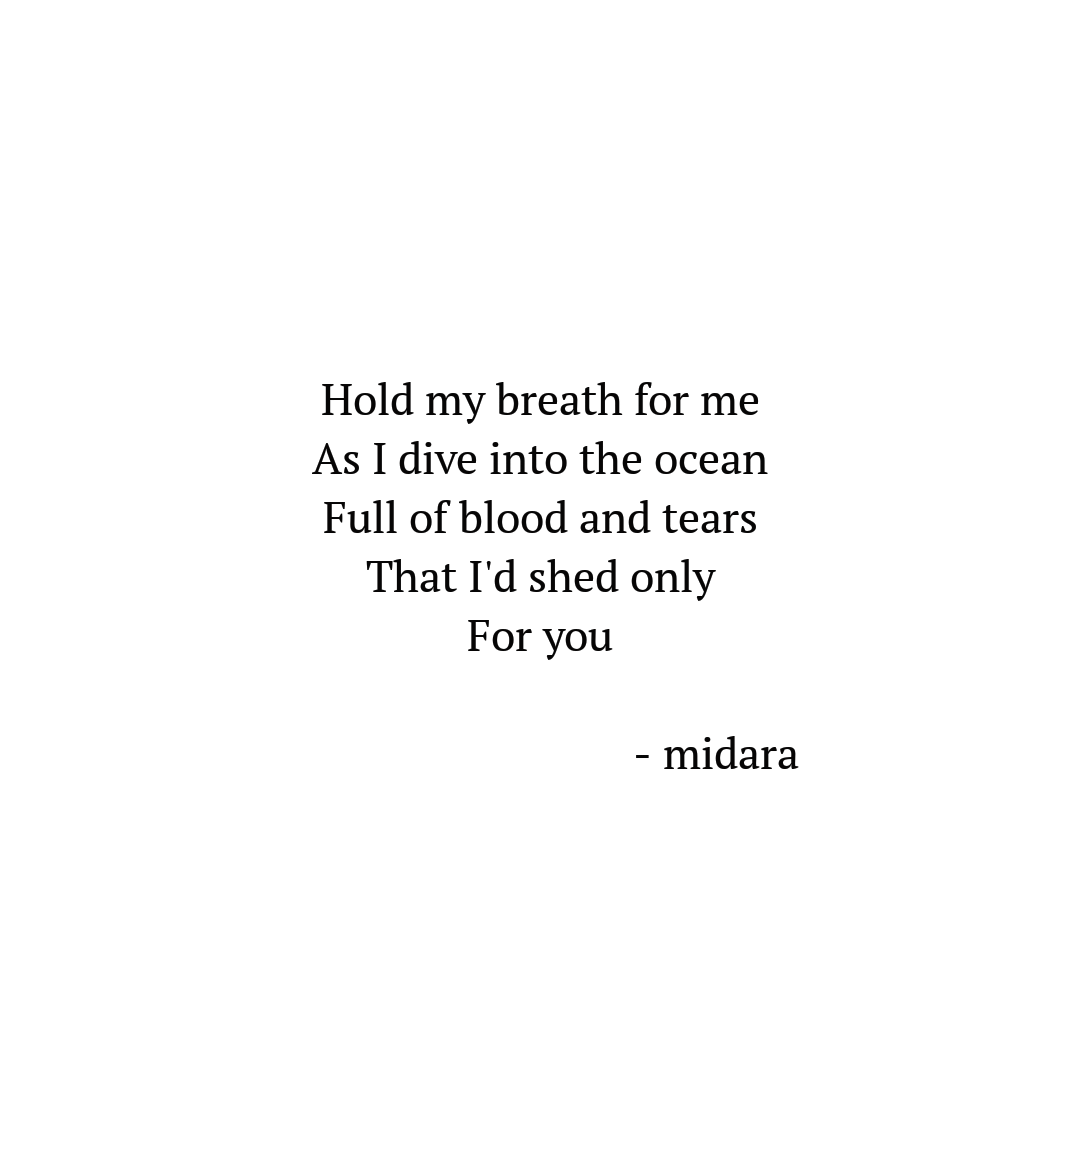 Quotes About Life And Death Life Death And Poetrymidara Quotes Broken Ocean Breath